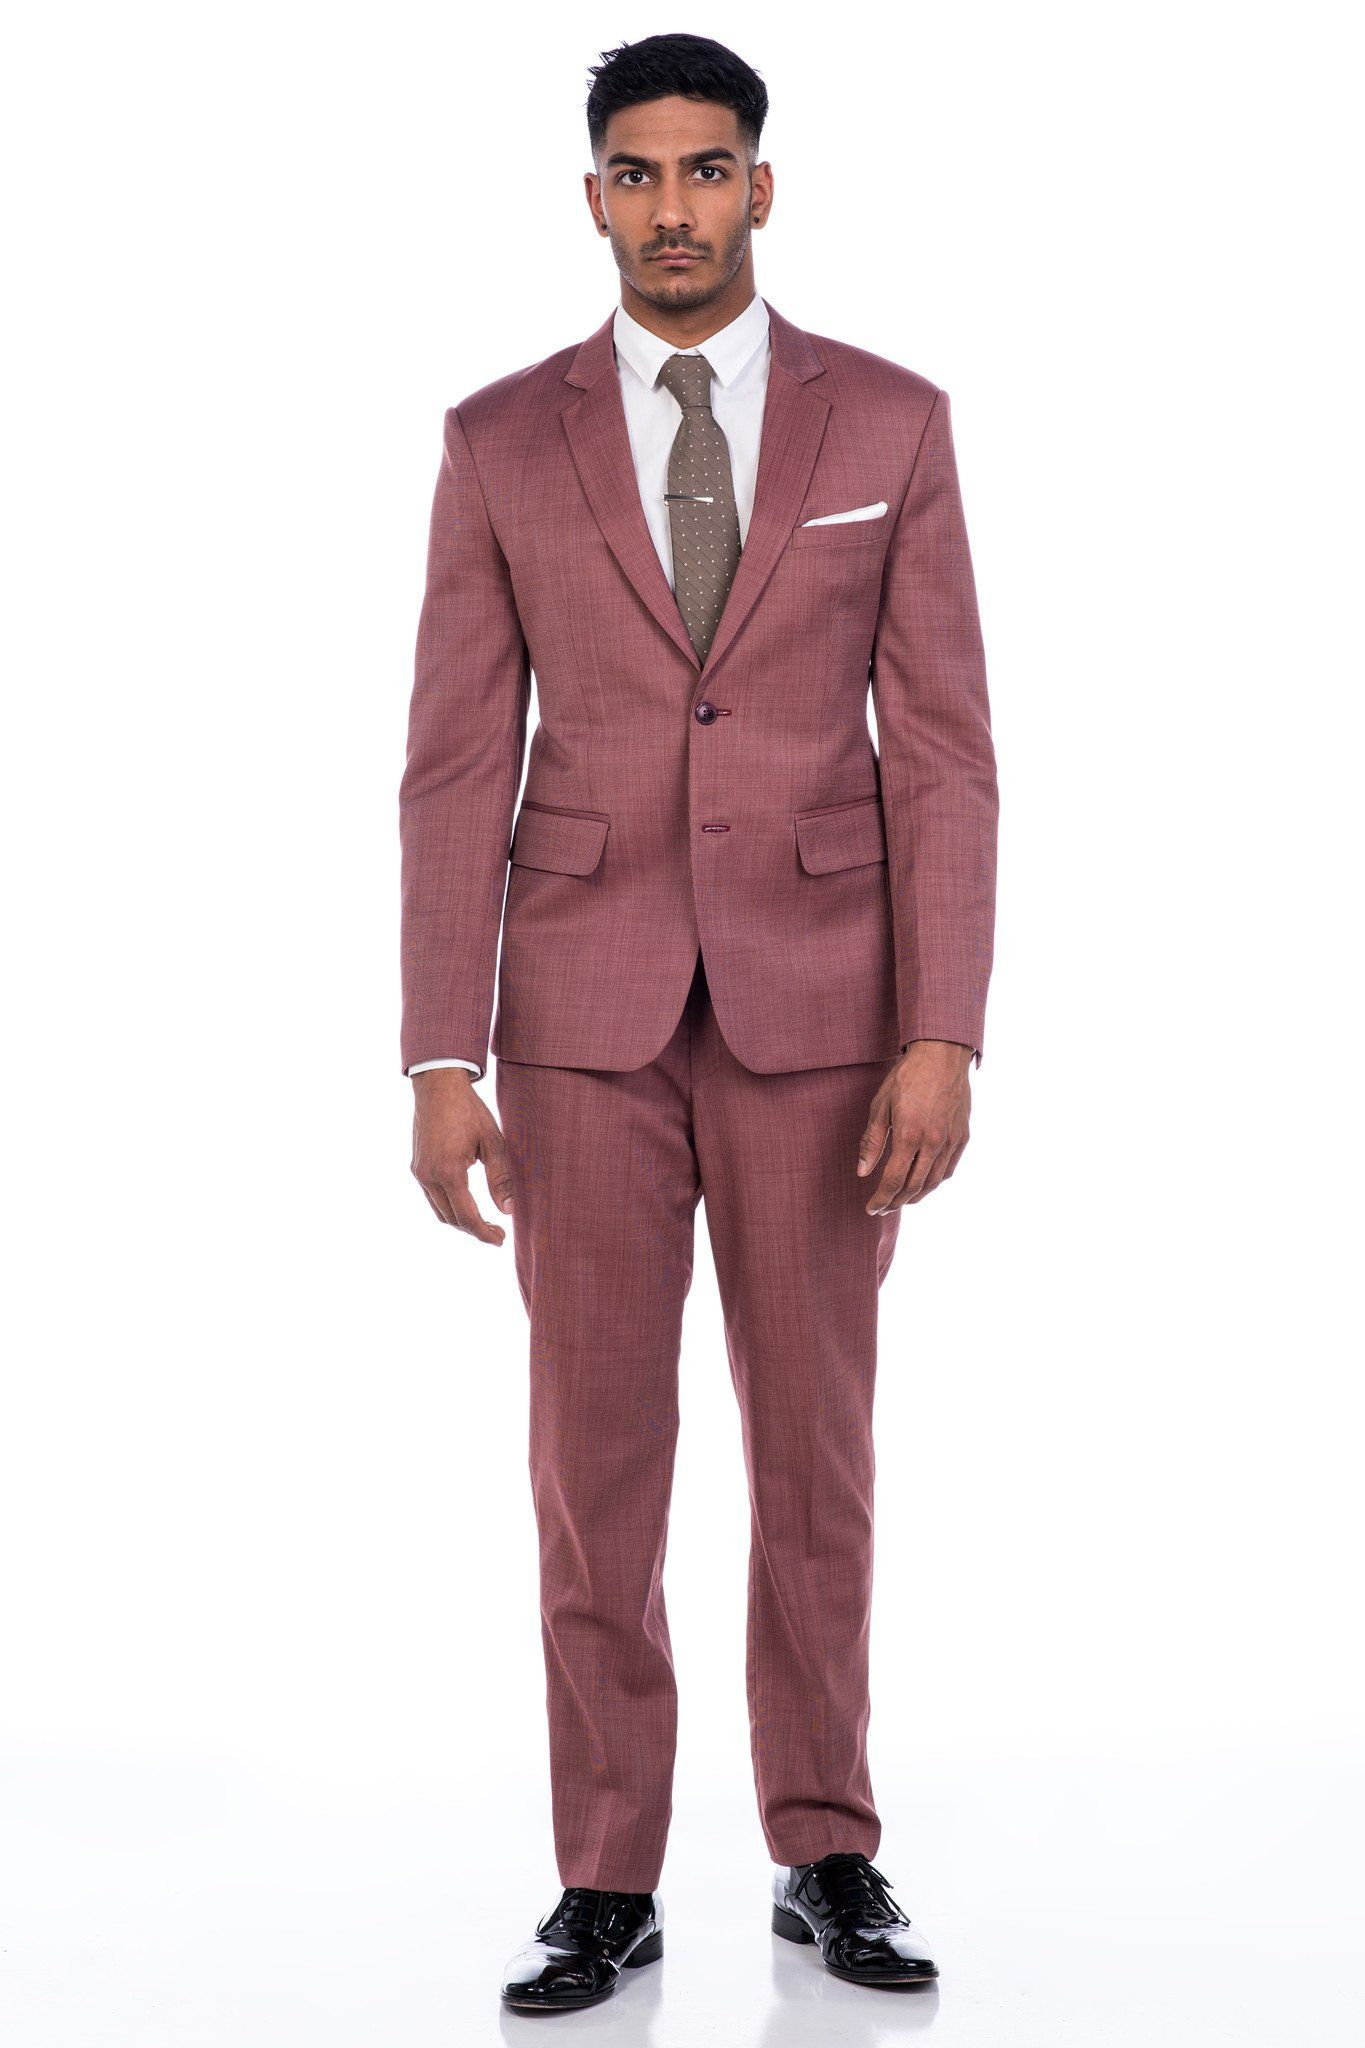 Suit - Sootz Cashmere Wool Chico Suit